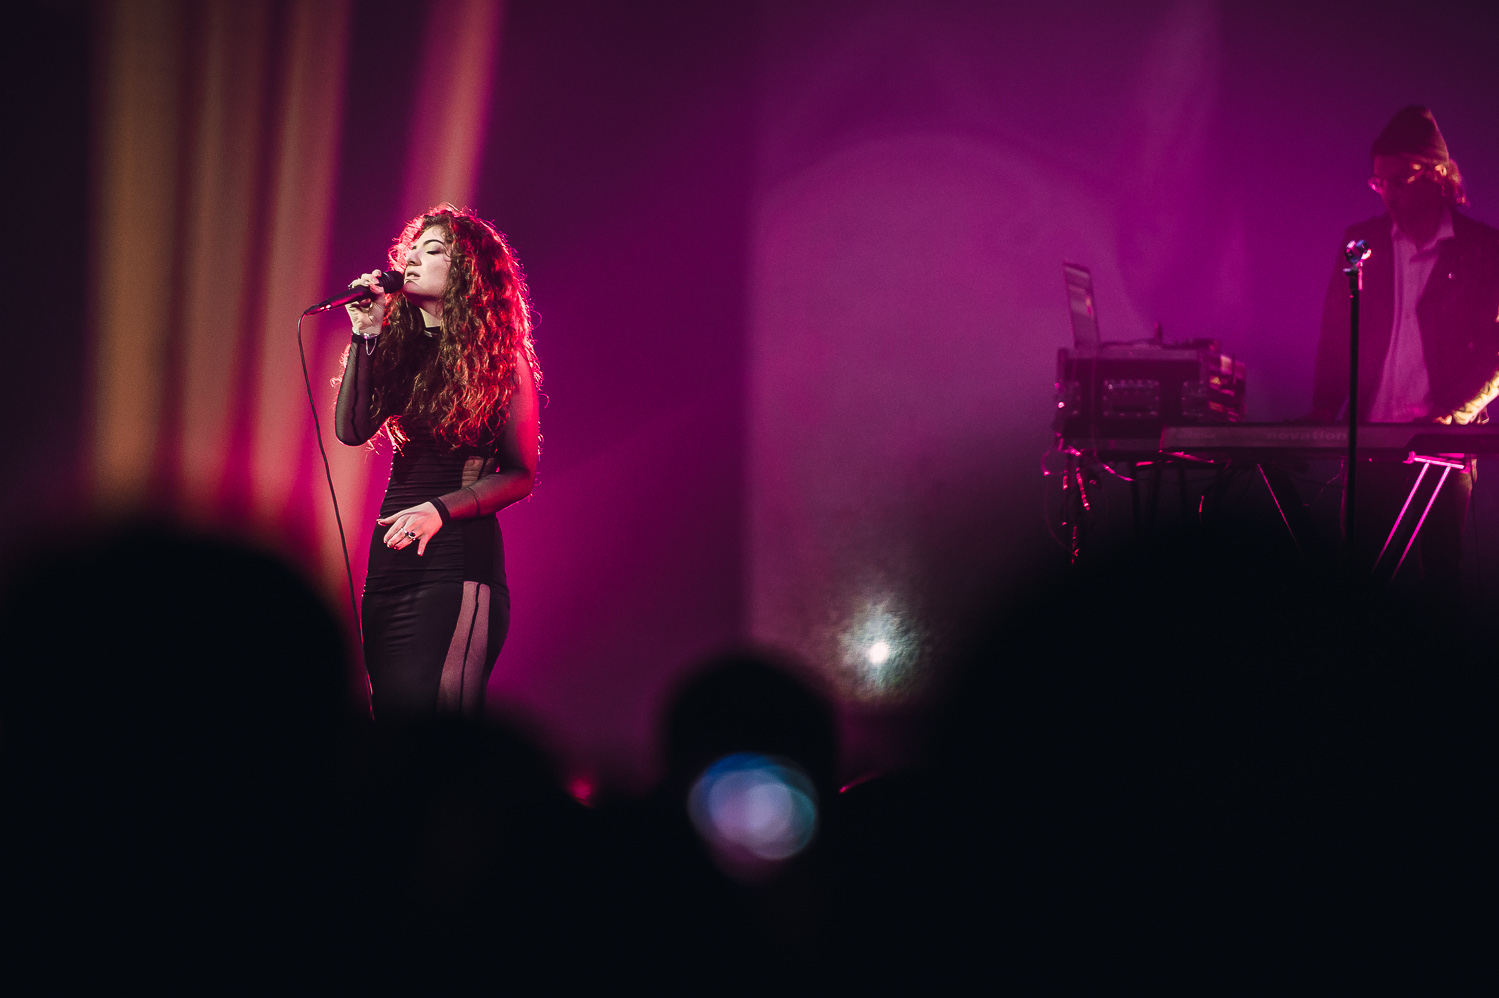 Lorde iHeart Radio_013_photo_©2013 Steve Dykes.jpg